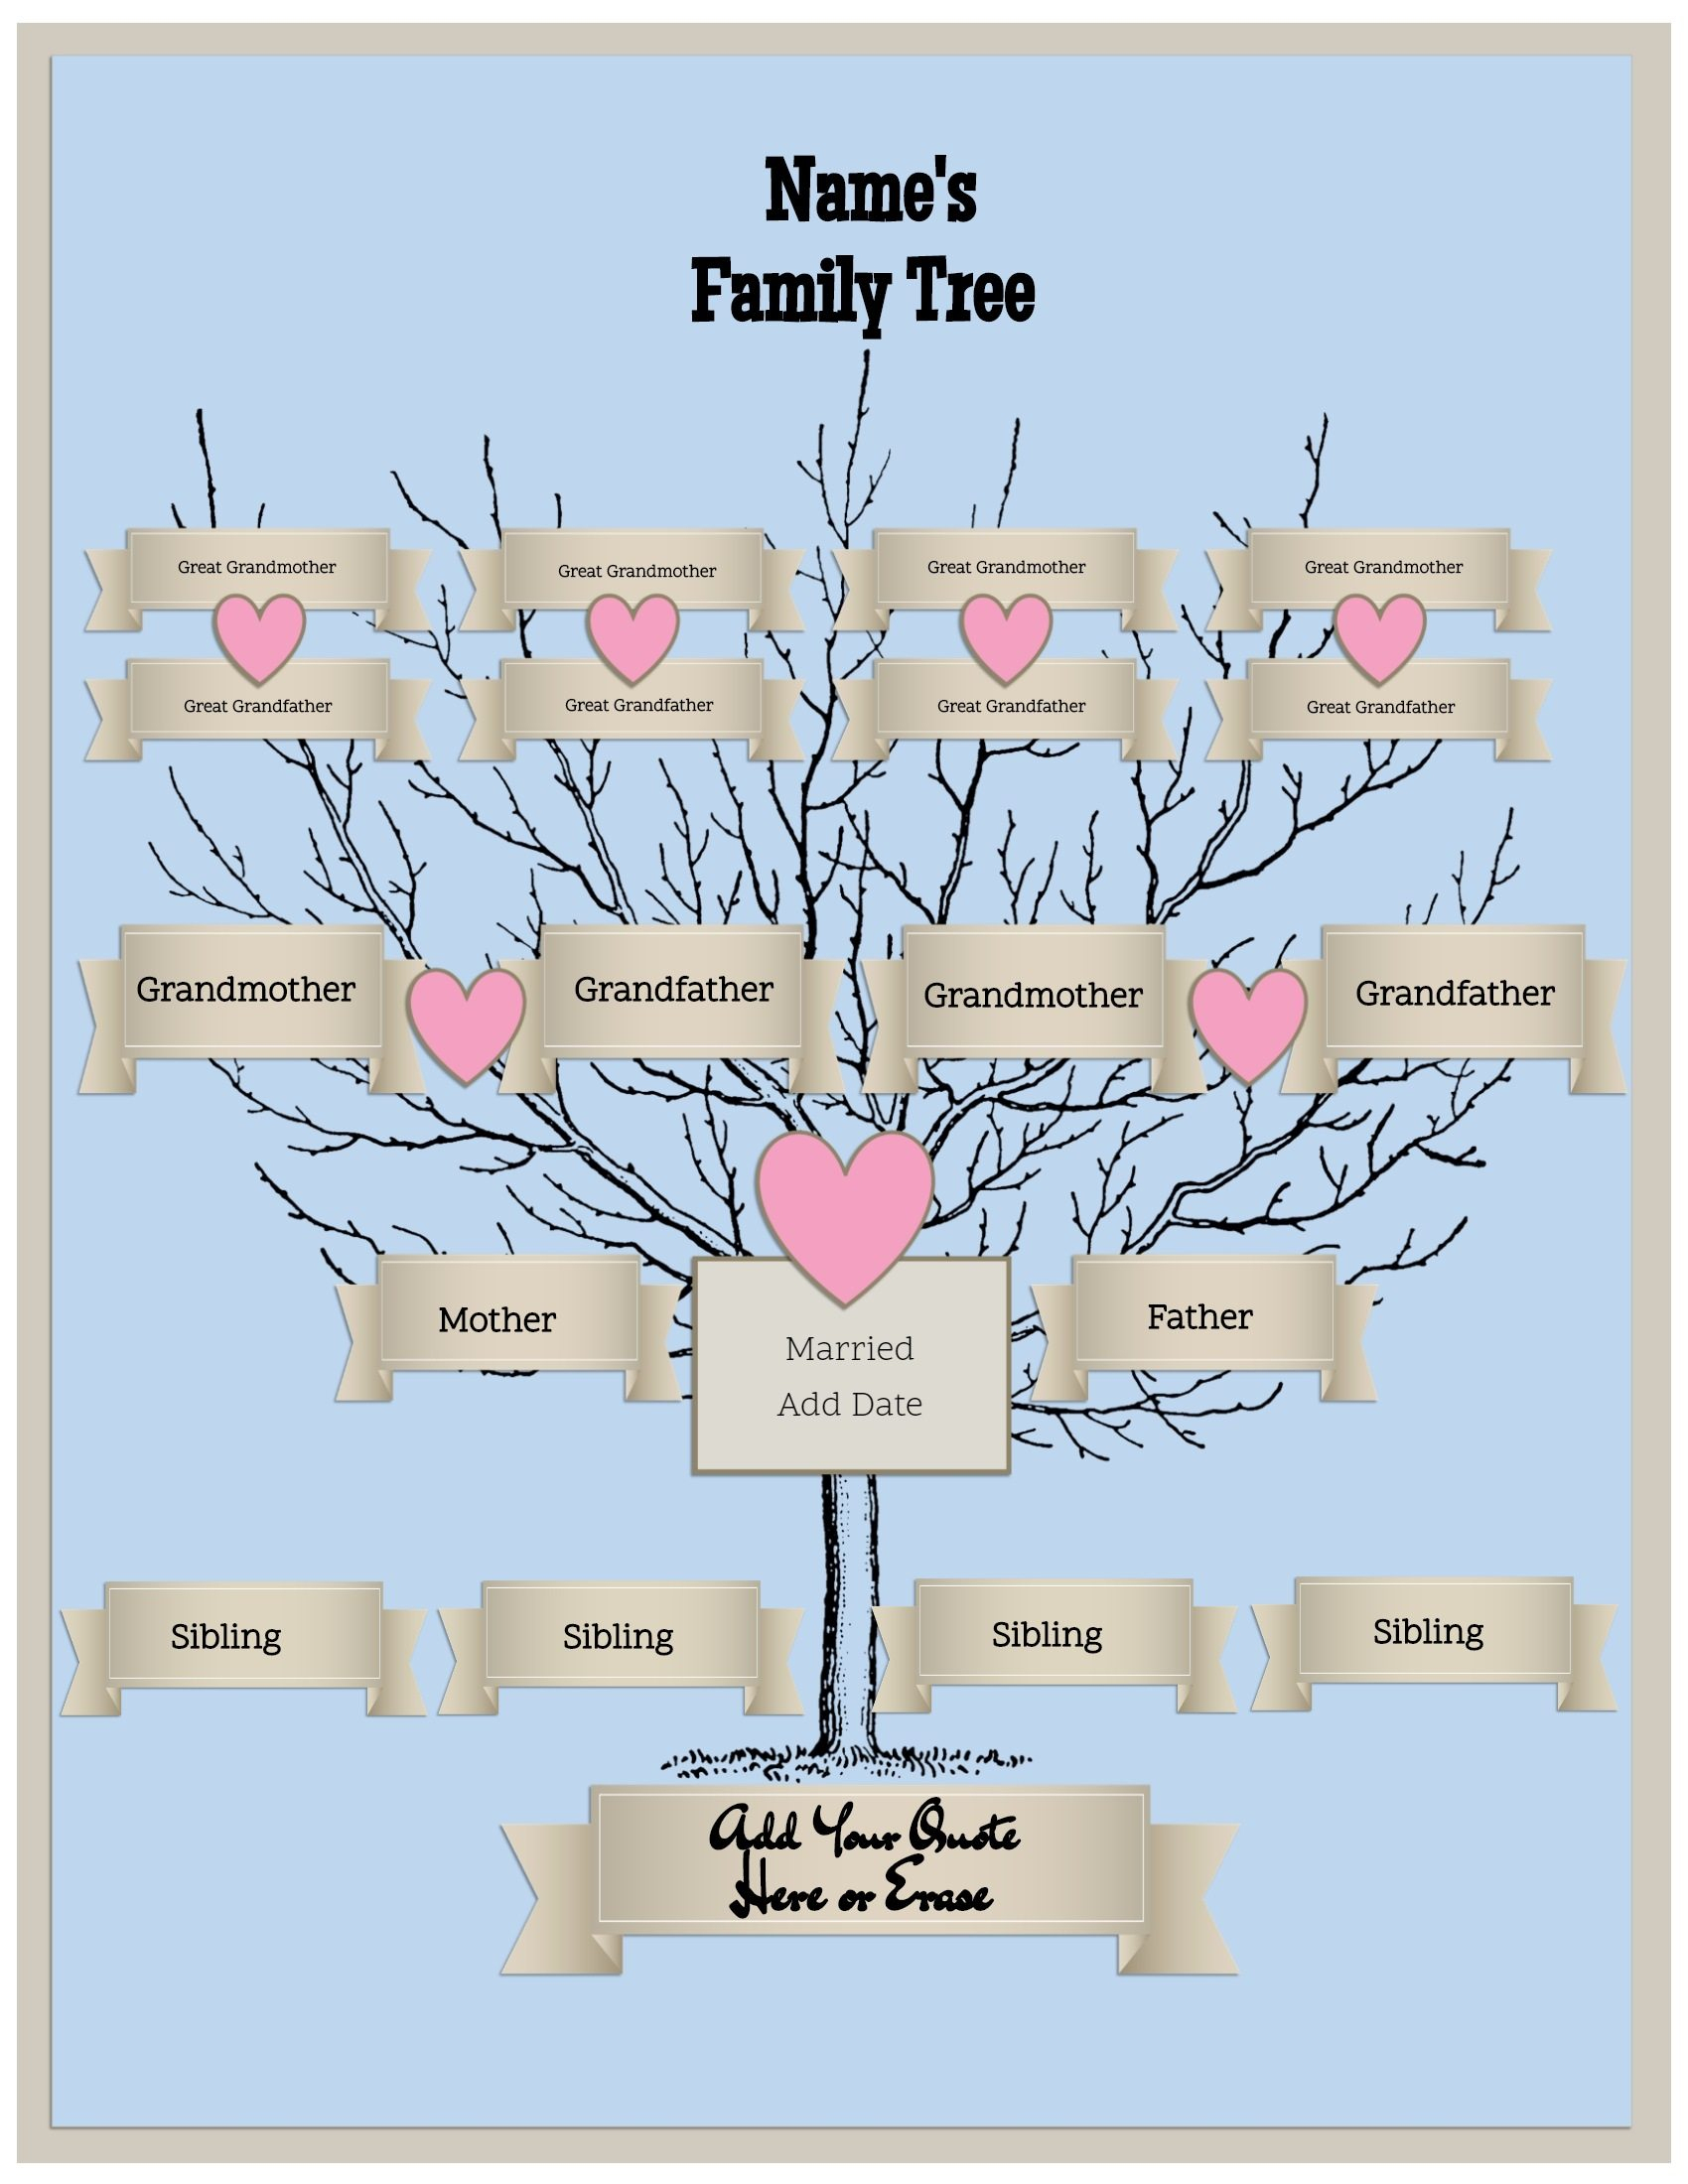 4 Generation Family Tree Template Free To Customize & Print - Free Printable Family Tree Template 4 Generations